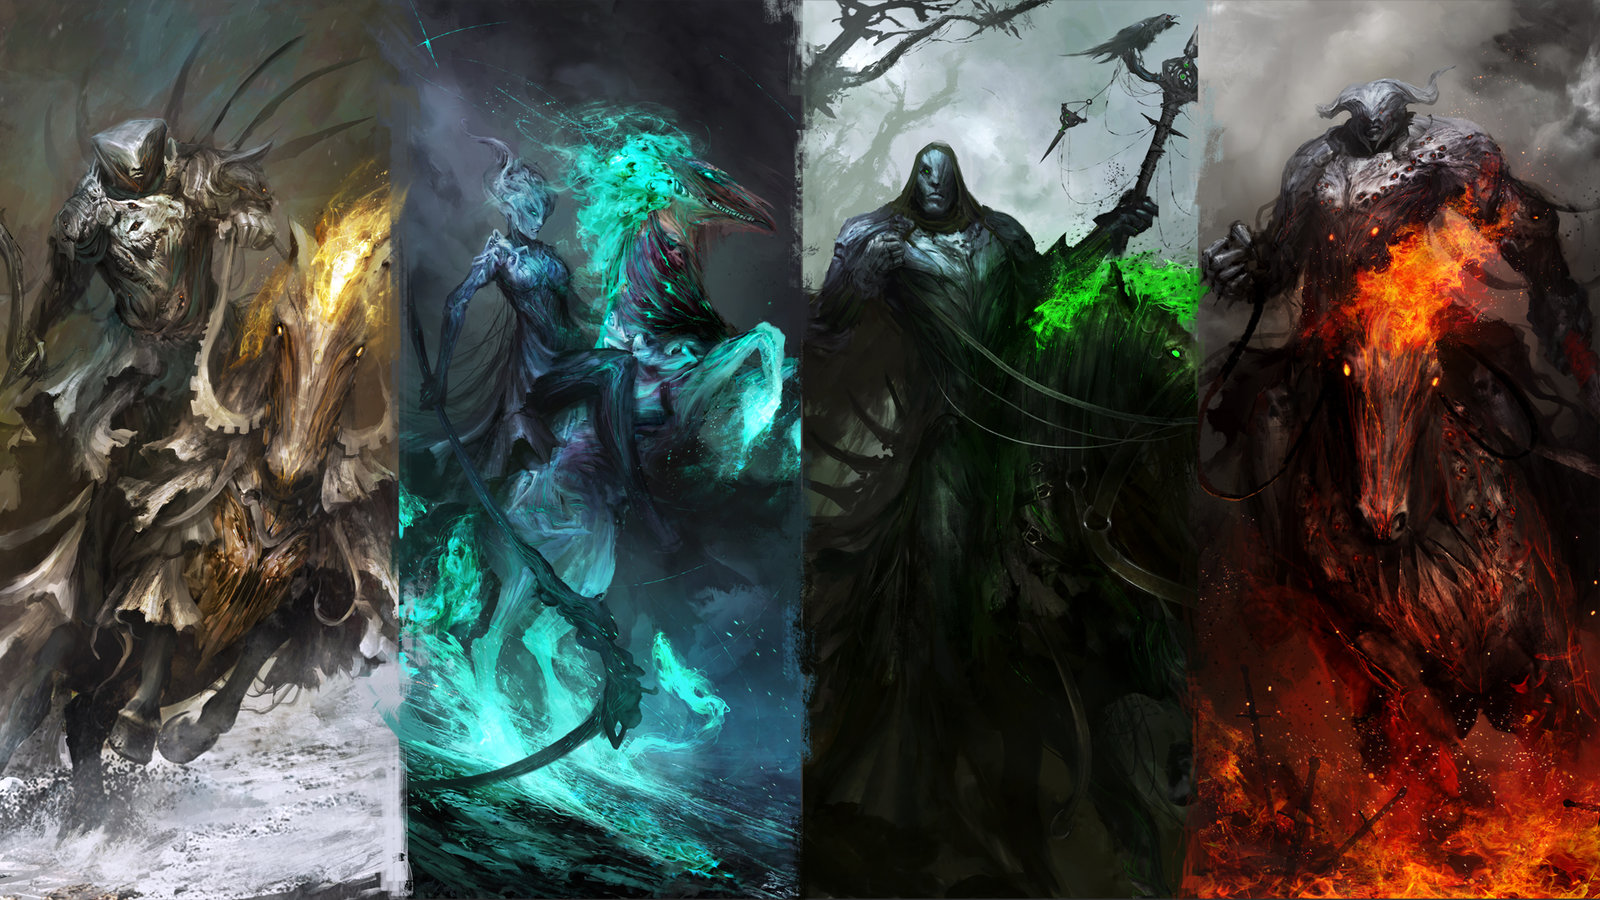 The 4 horsemen of the Apocalypse wallpapers 1600x900